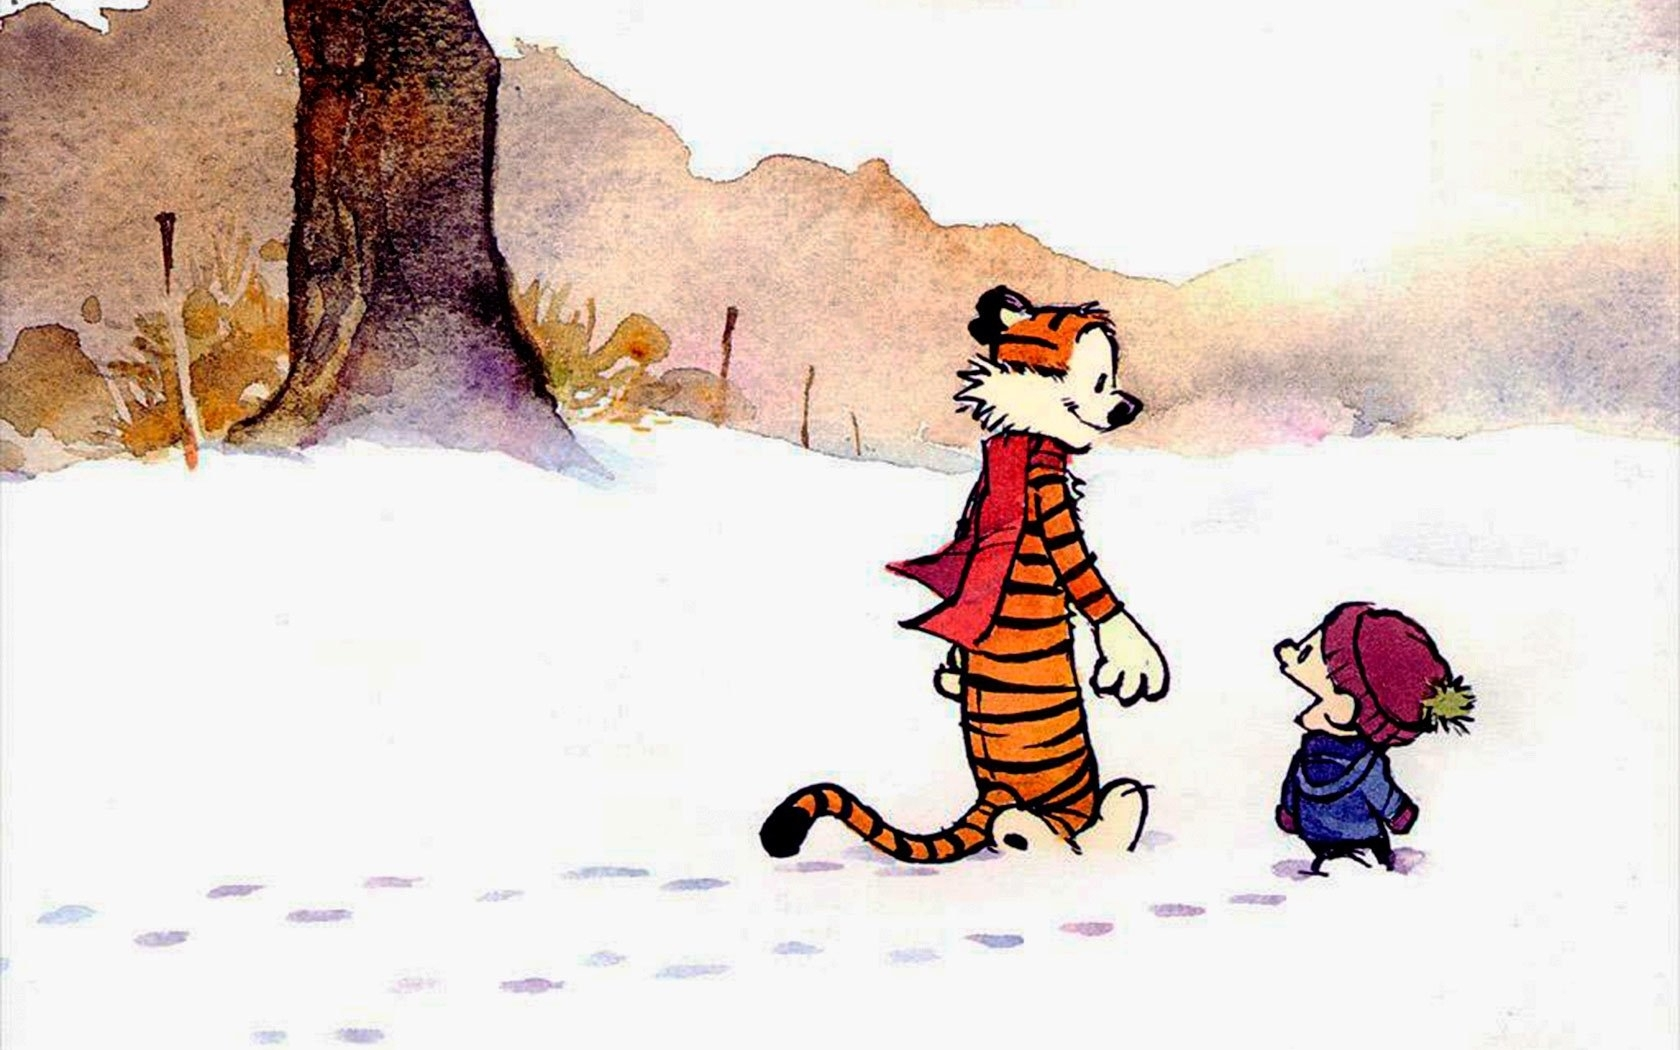 10 Best Calvin And Hobbes Hd Wallpaper FULL HD 1080p For PC Background